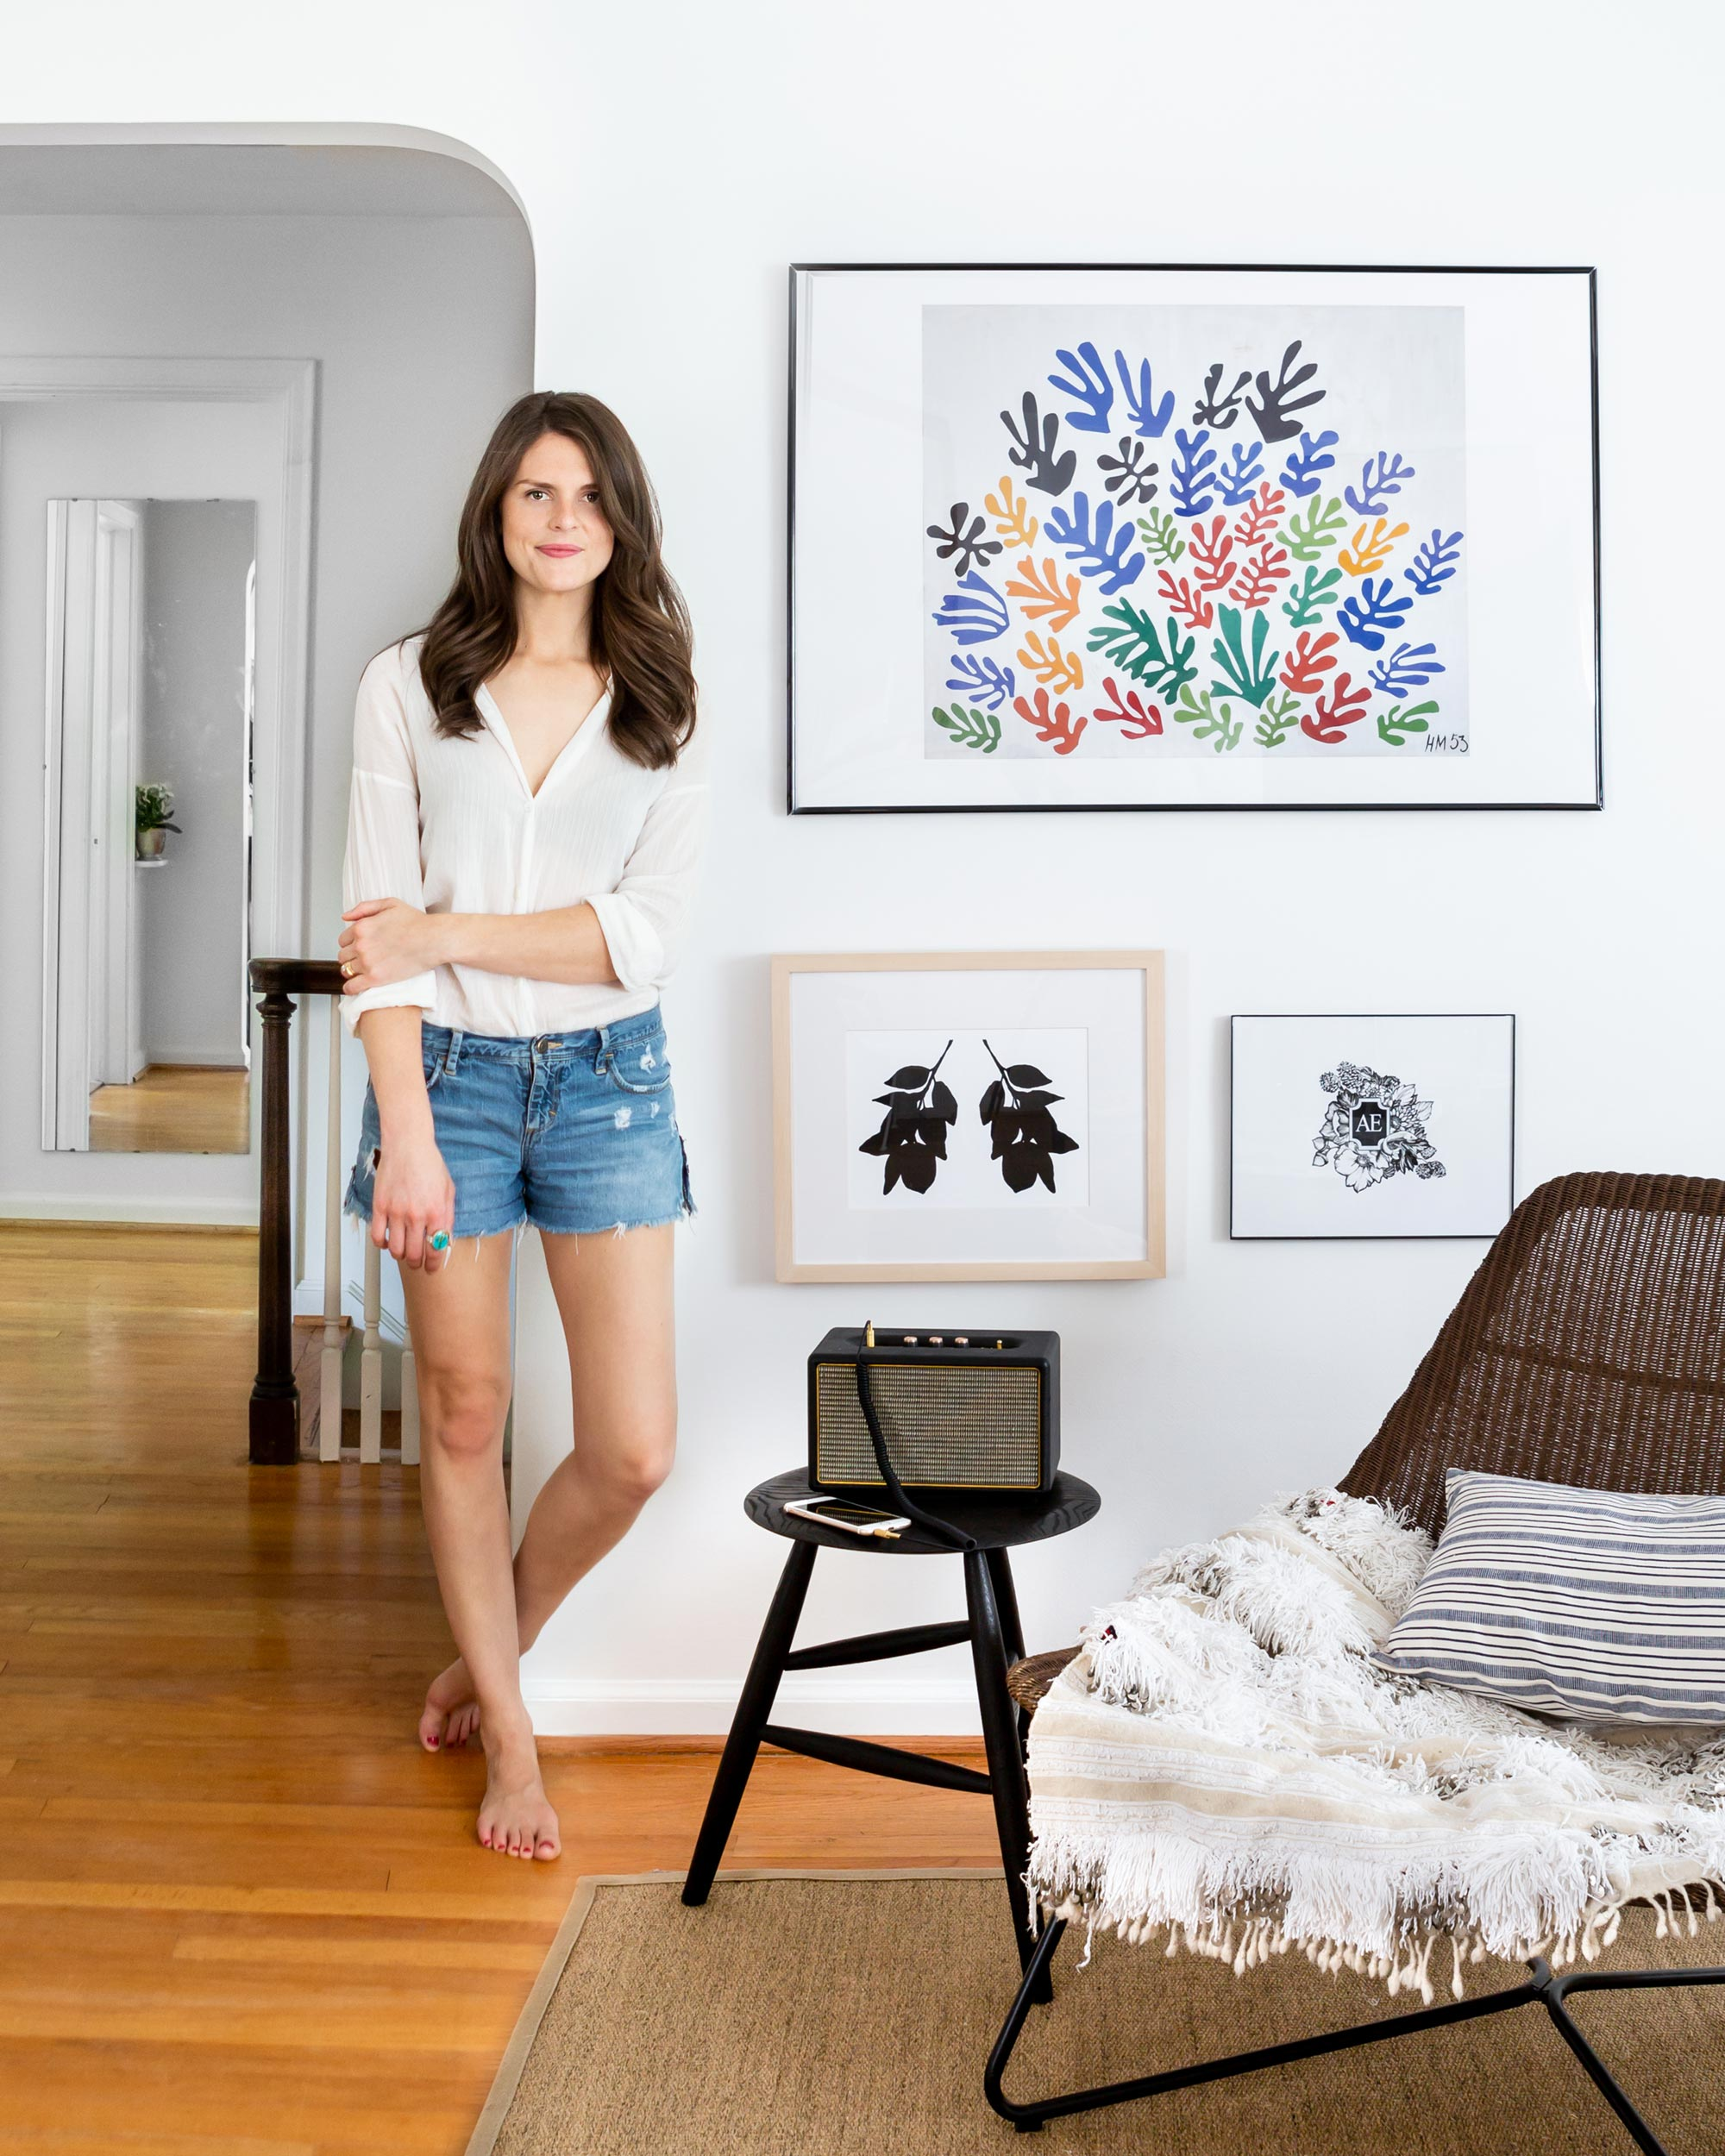 Artist  Emily Schoen , as photographed by  Marta Perez  for  The Everygirl .